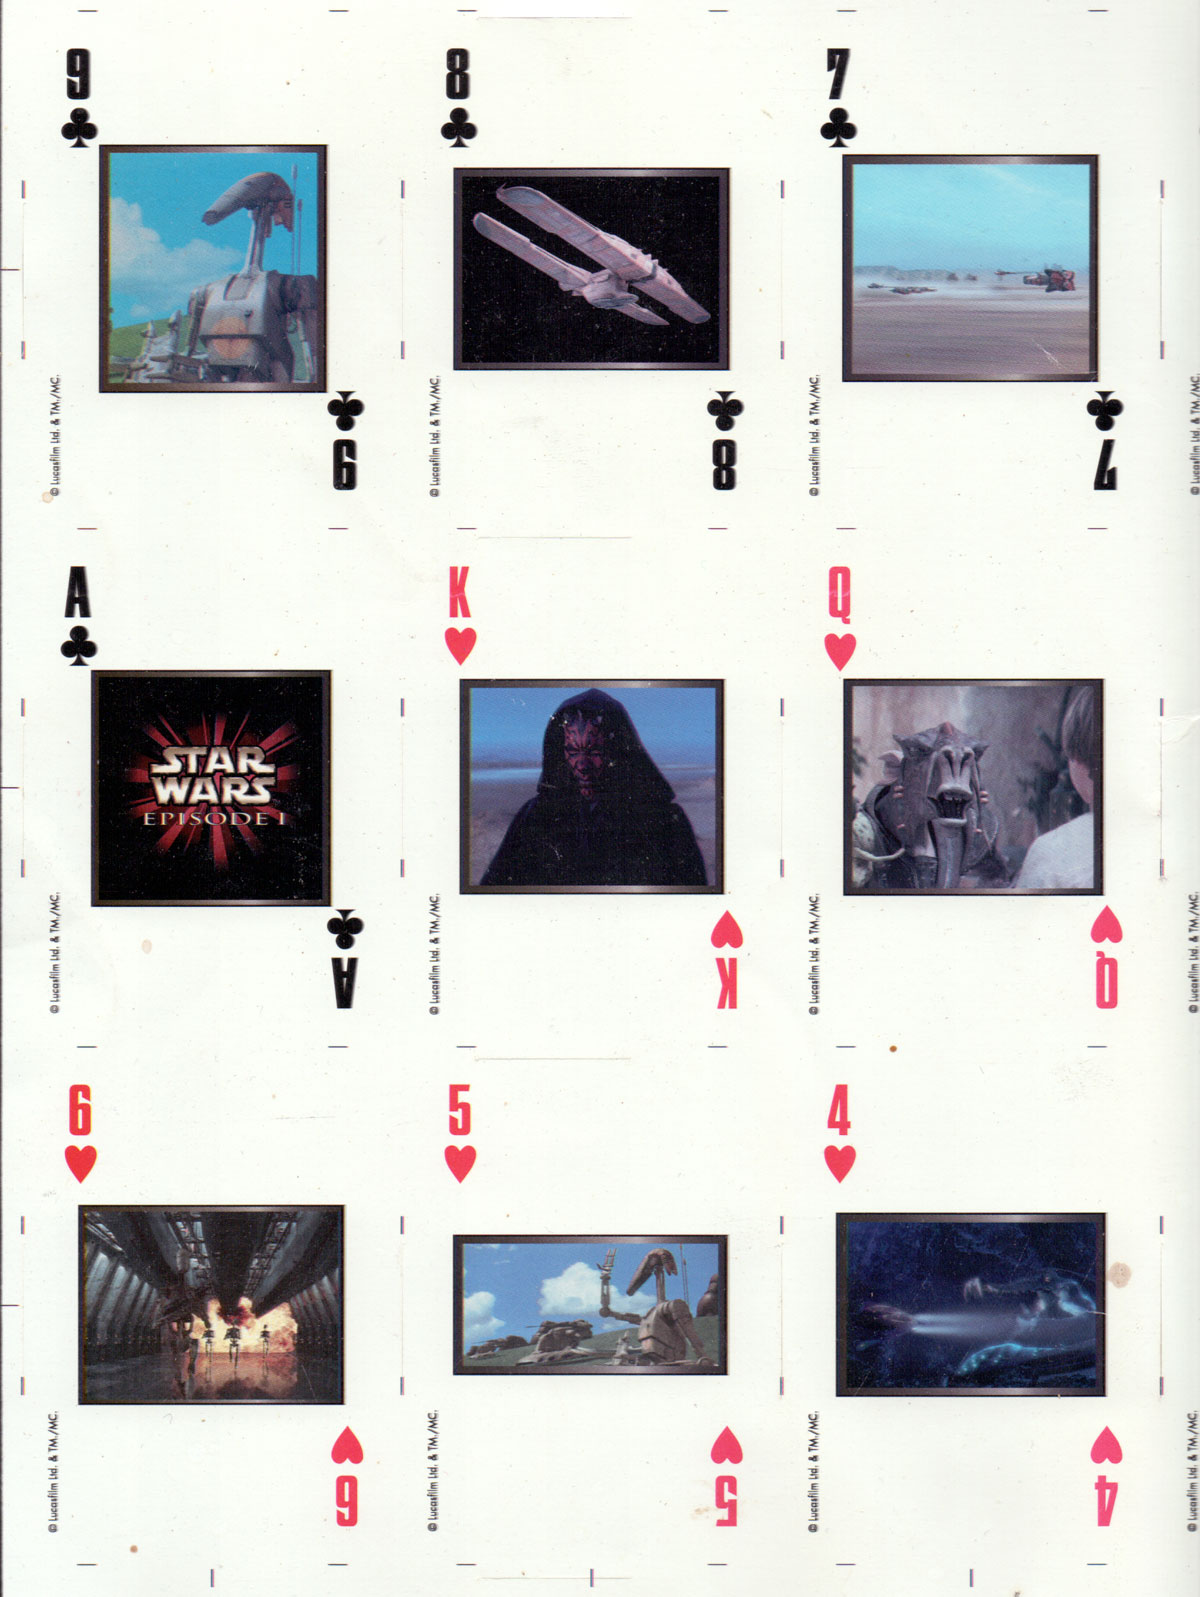 Detail from uncut sheet of STAR WARS Episode 1 playing cards printed by U.S. Playing Card Co., c.1999